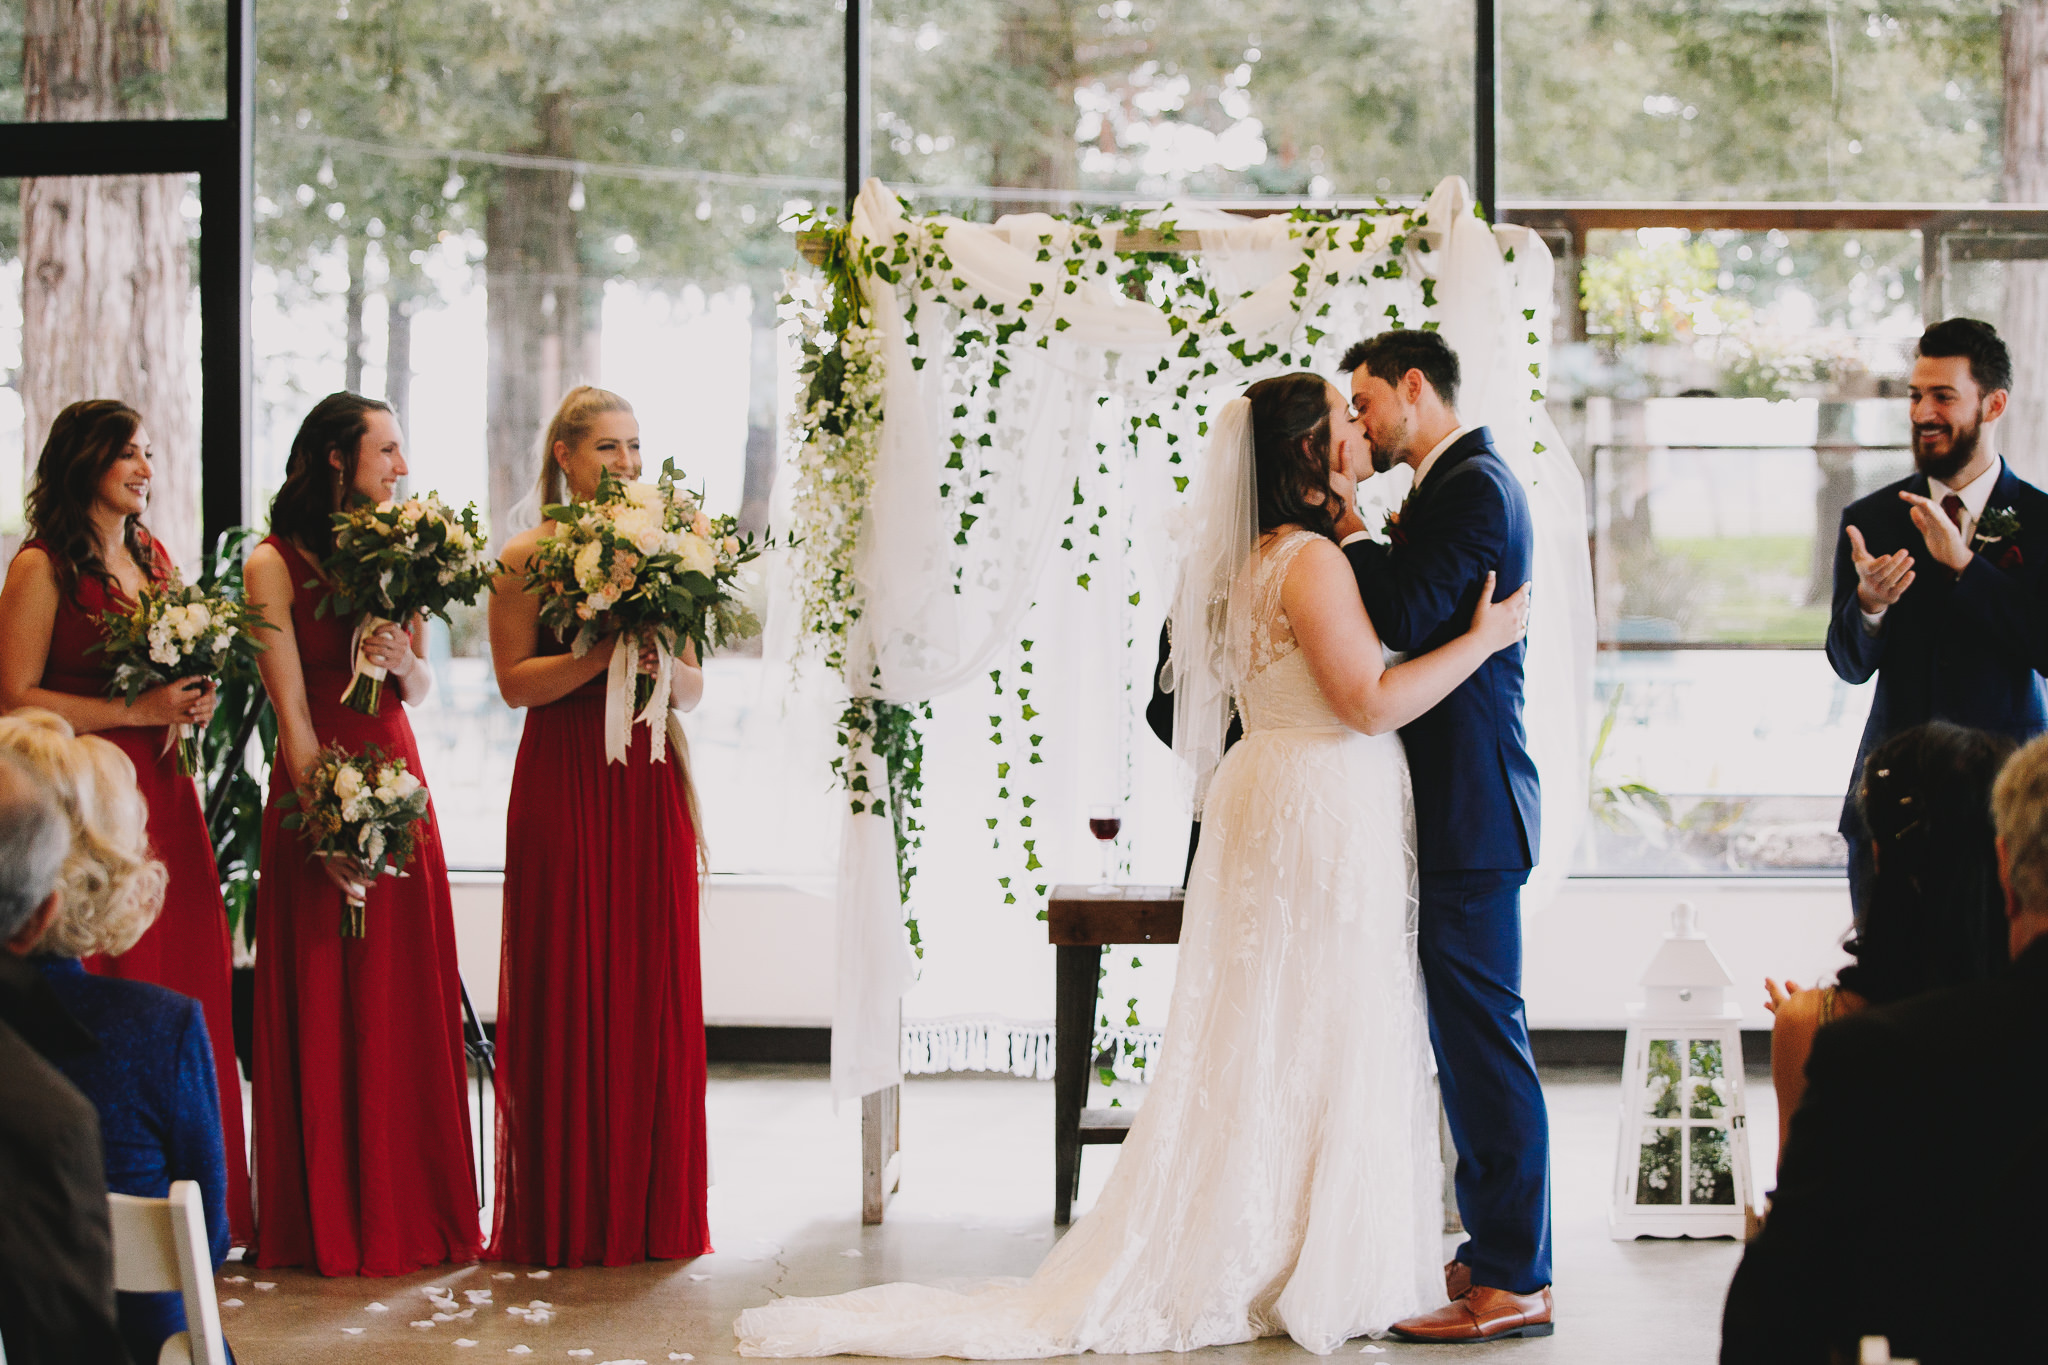 Archer Inspired Photography Shelby and Ben Wedding Sally Tomatoes NorCal Rohnert Park California-22.jpg